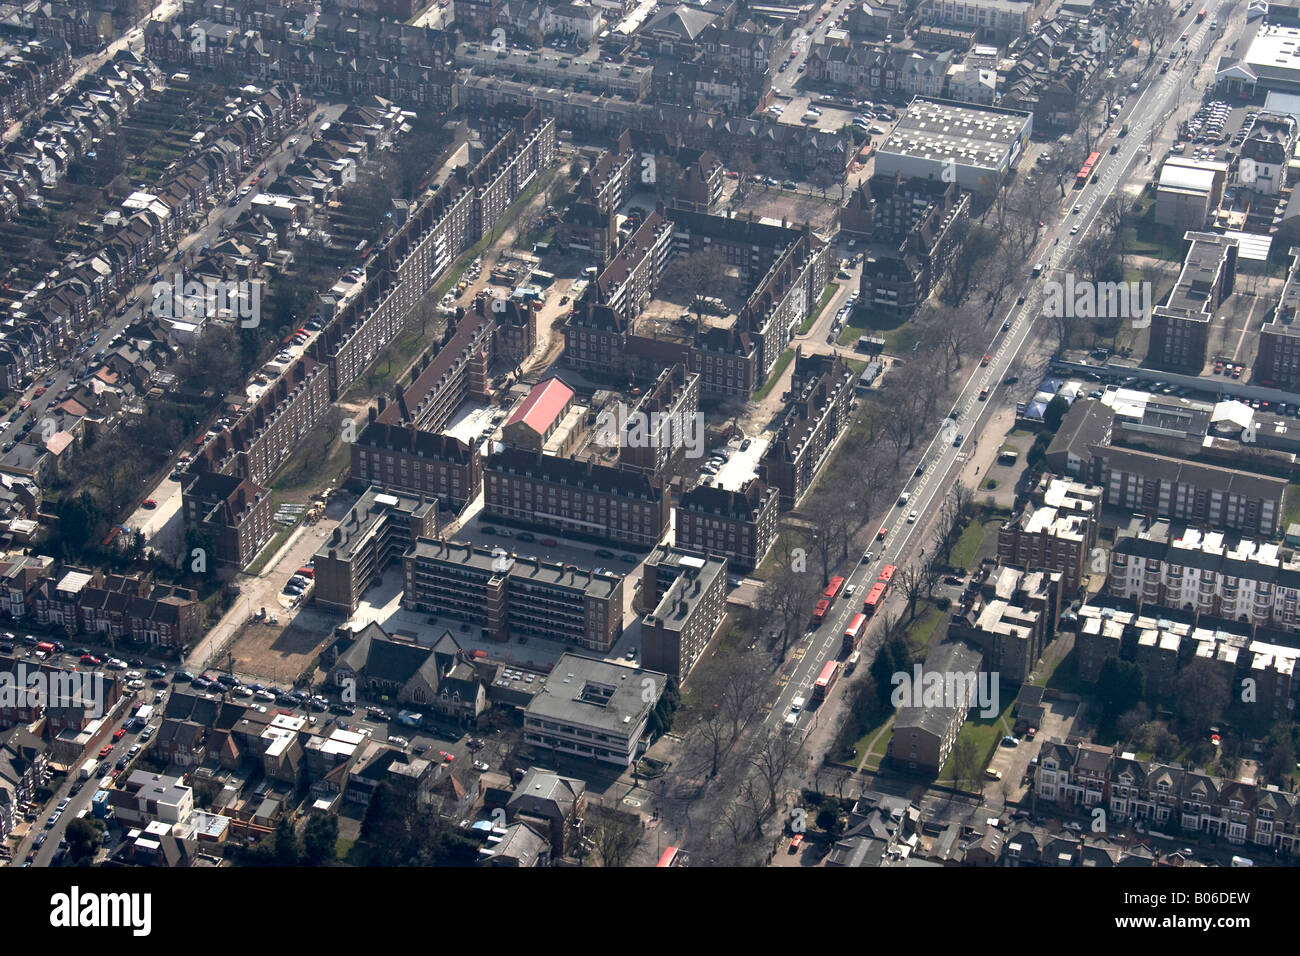 Aerial view of London England UK High level oblique - Stock Image